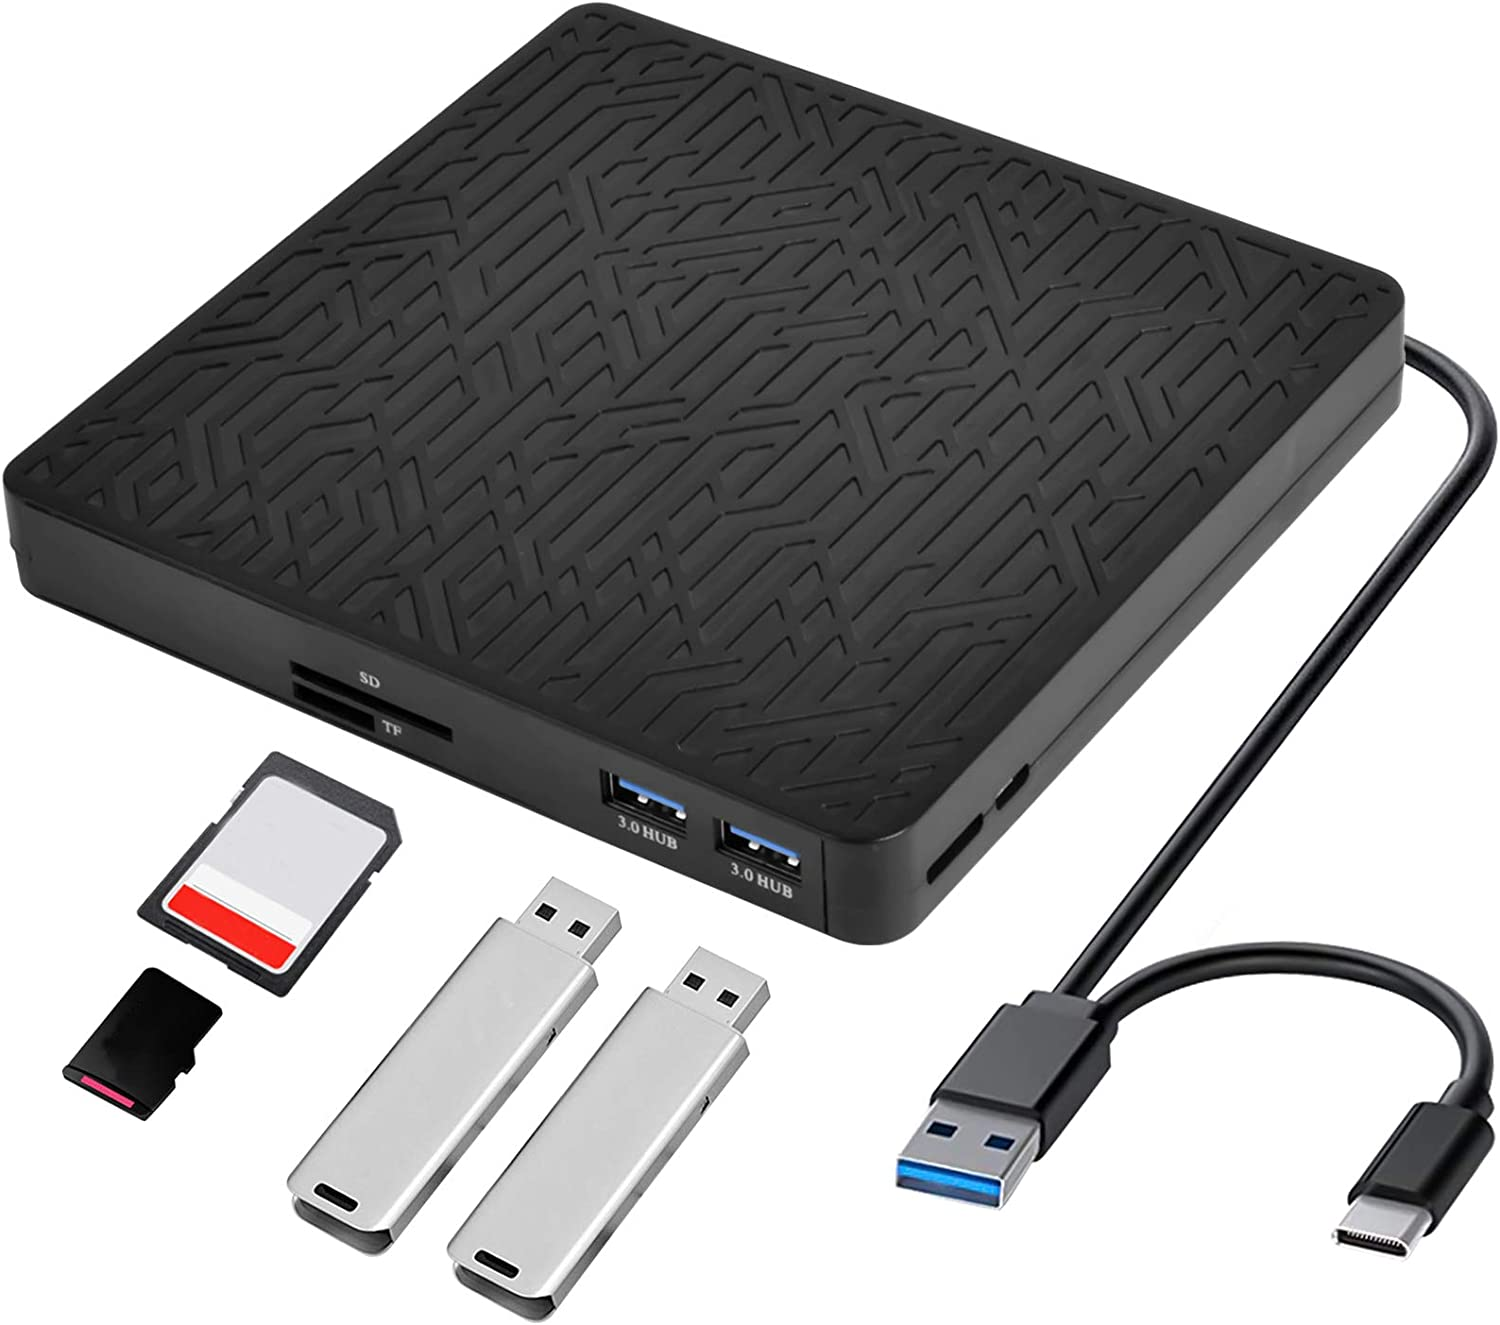 External DVD Drive, USB3.0/Type-C DVD CD ROM +/-RW Player for Laptop, Optical Disk Burner with 2 USB3.0 Port, SD/TF Port, Micro USB Type C Cord for PC Desktop Mac Book Windows 10/8/7 Linux OS